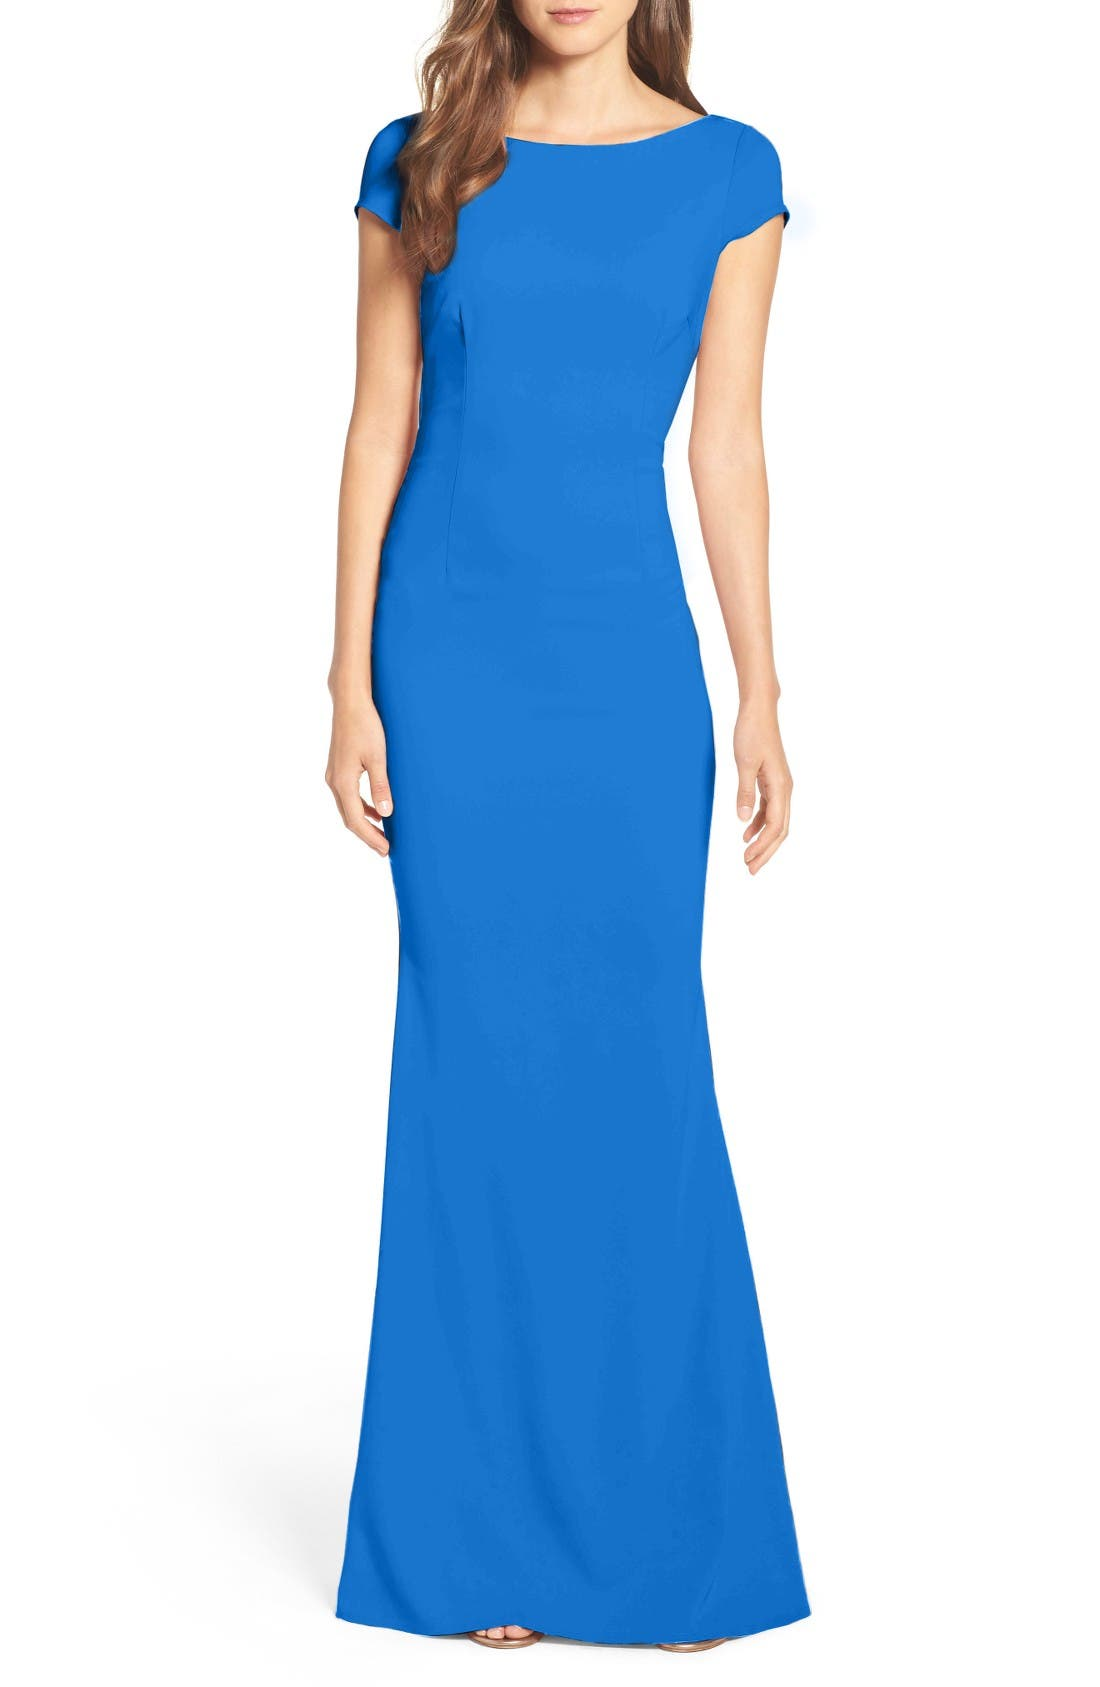 Main Image - Katie May Plunge Knot Back Gown